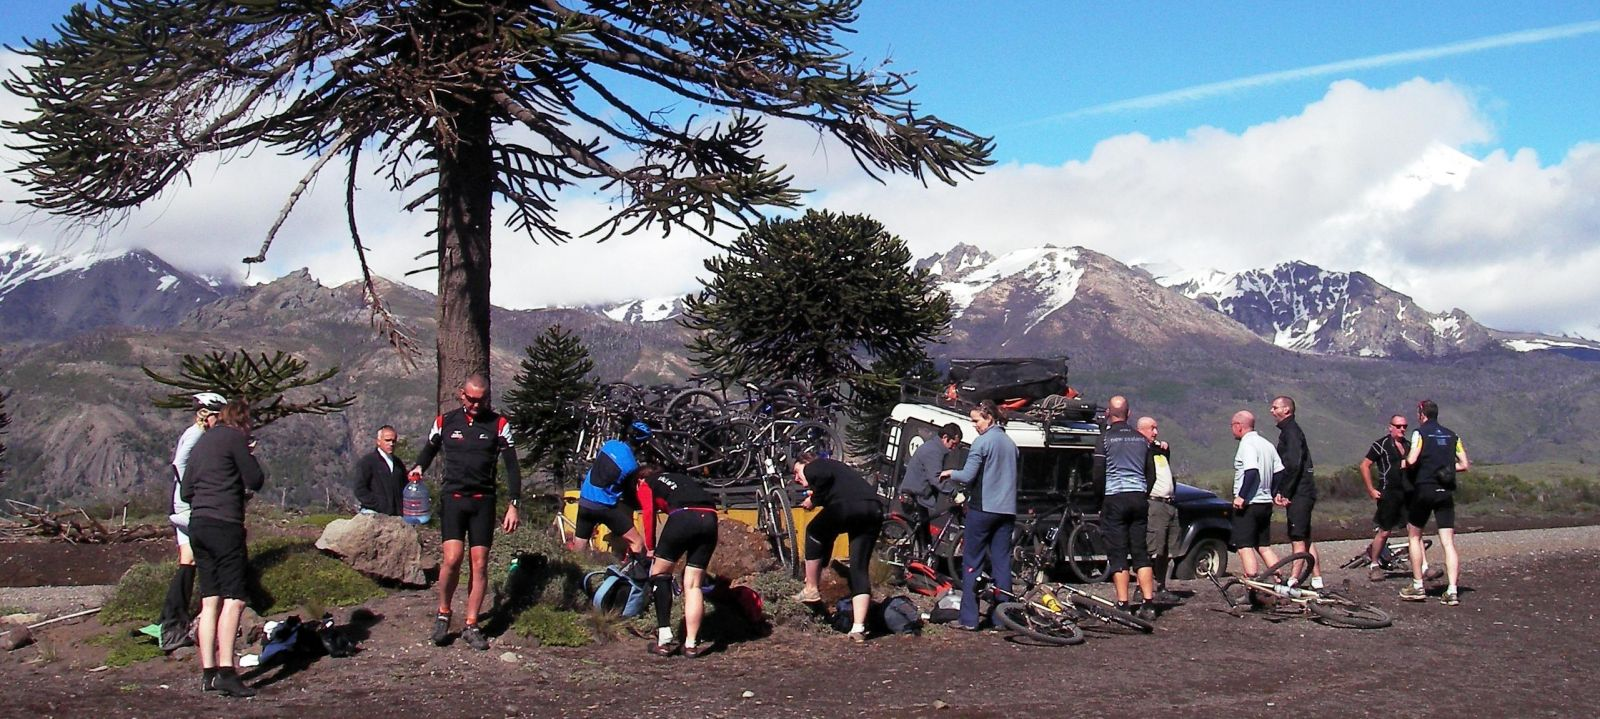 d0a8b7772 Chile and Argentina Cycling Holidays and Cycling Tours   Cycling ...